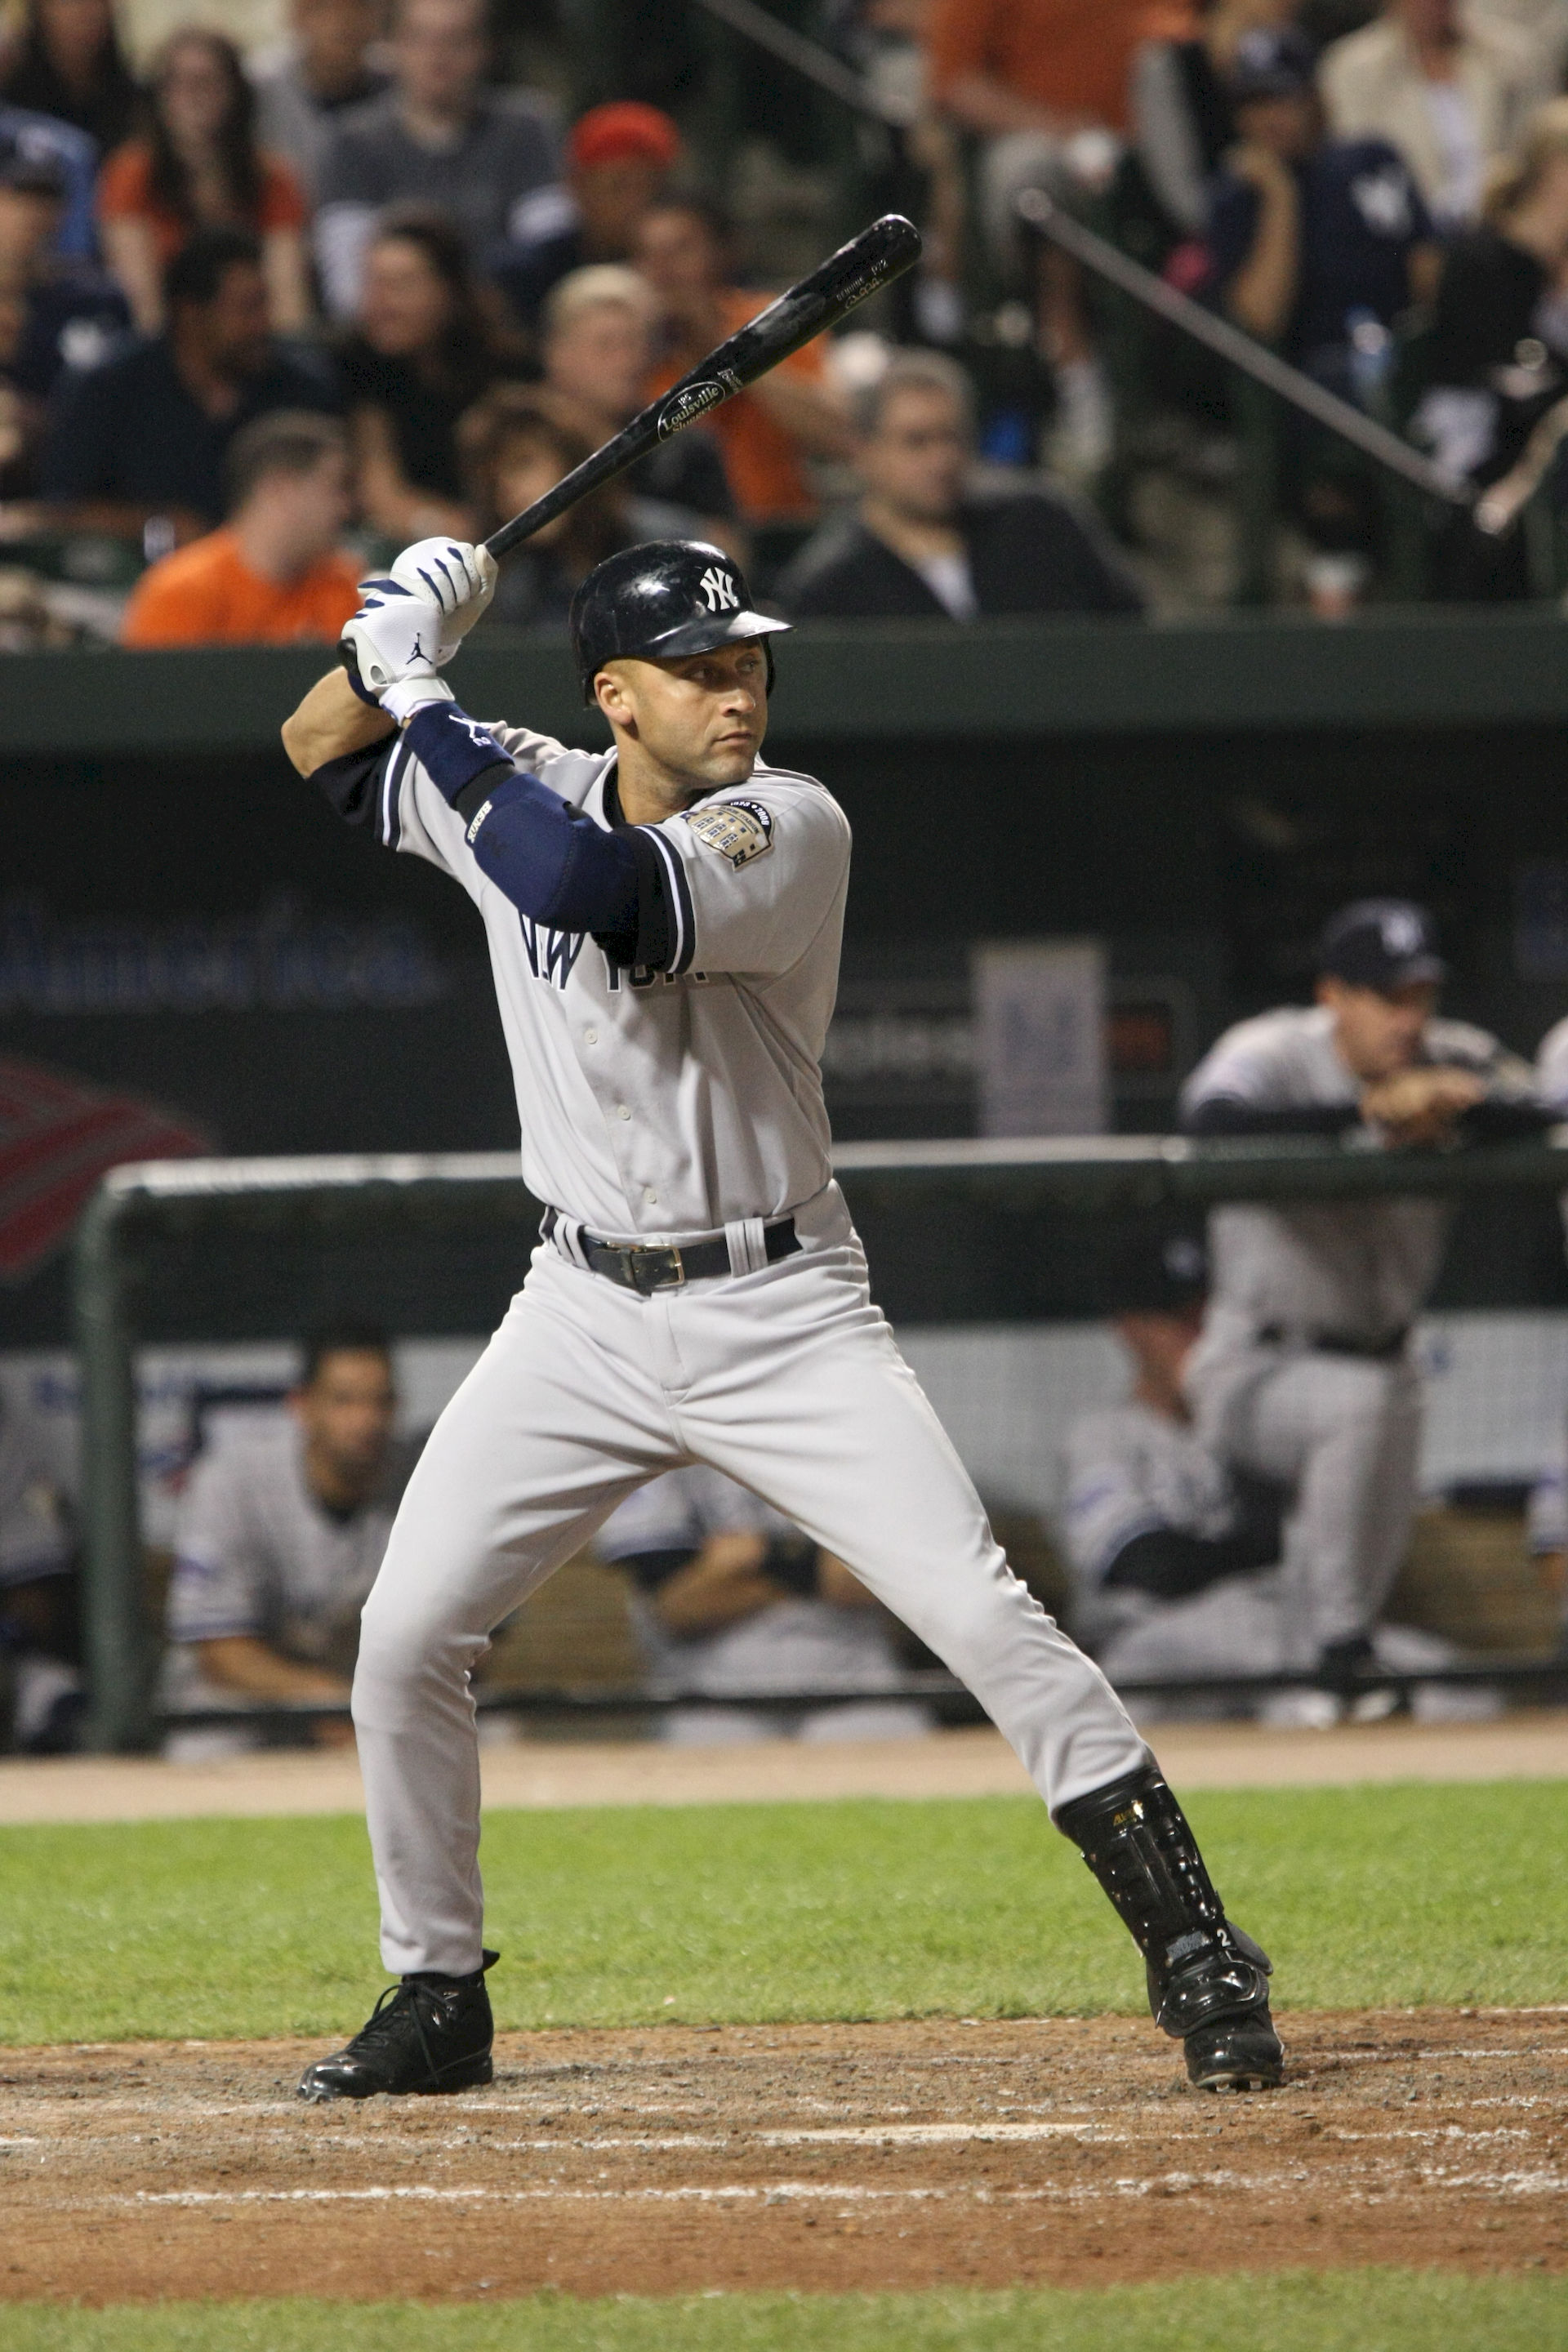 Photo of Derek Jeter: Baseball player from the United States